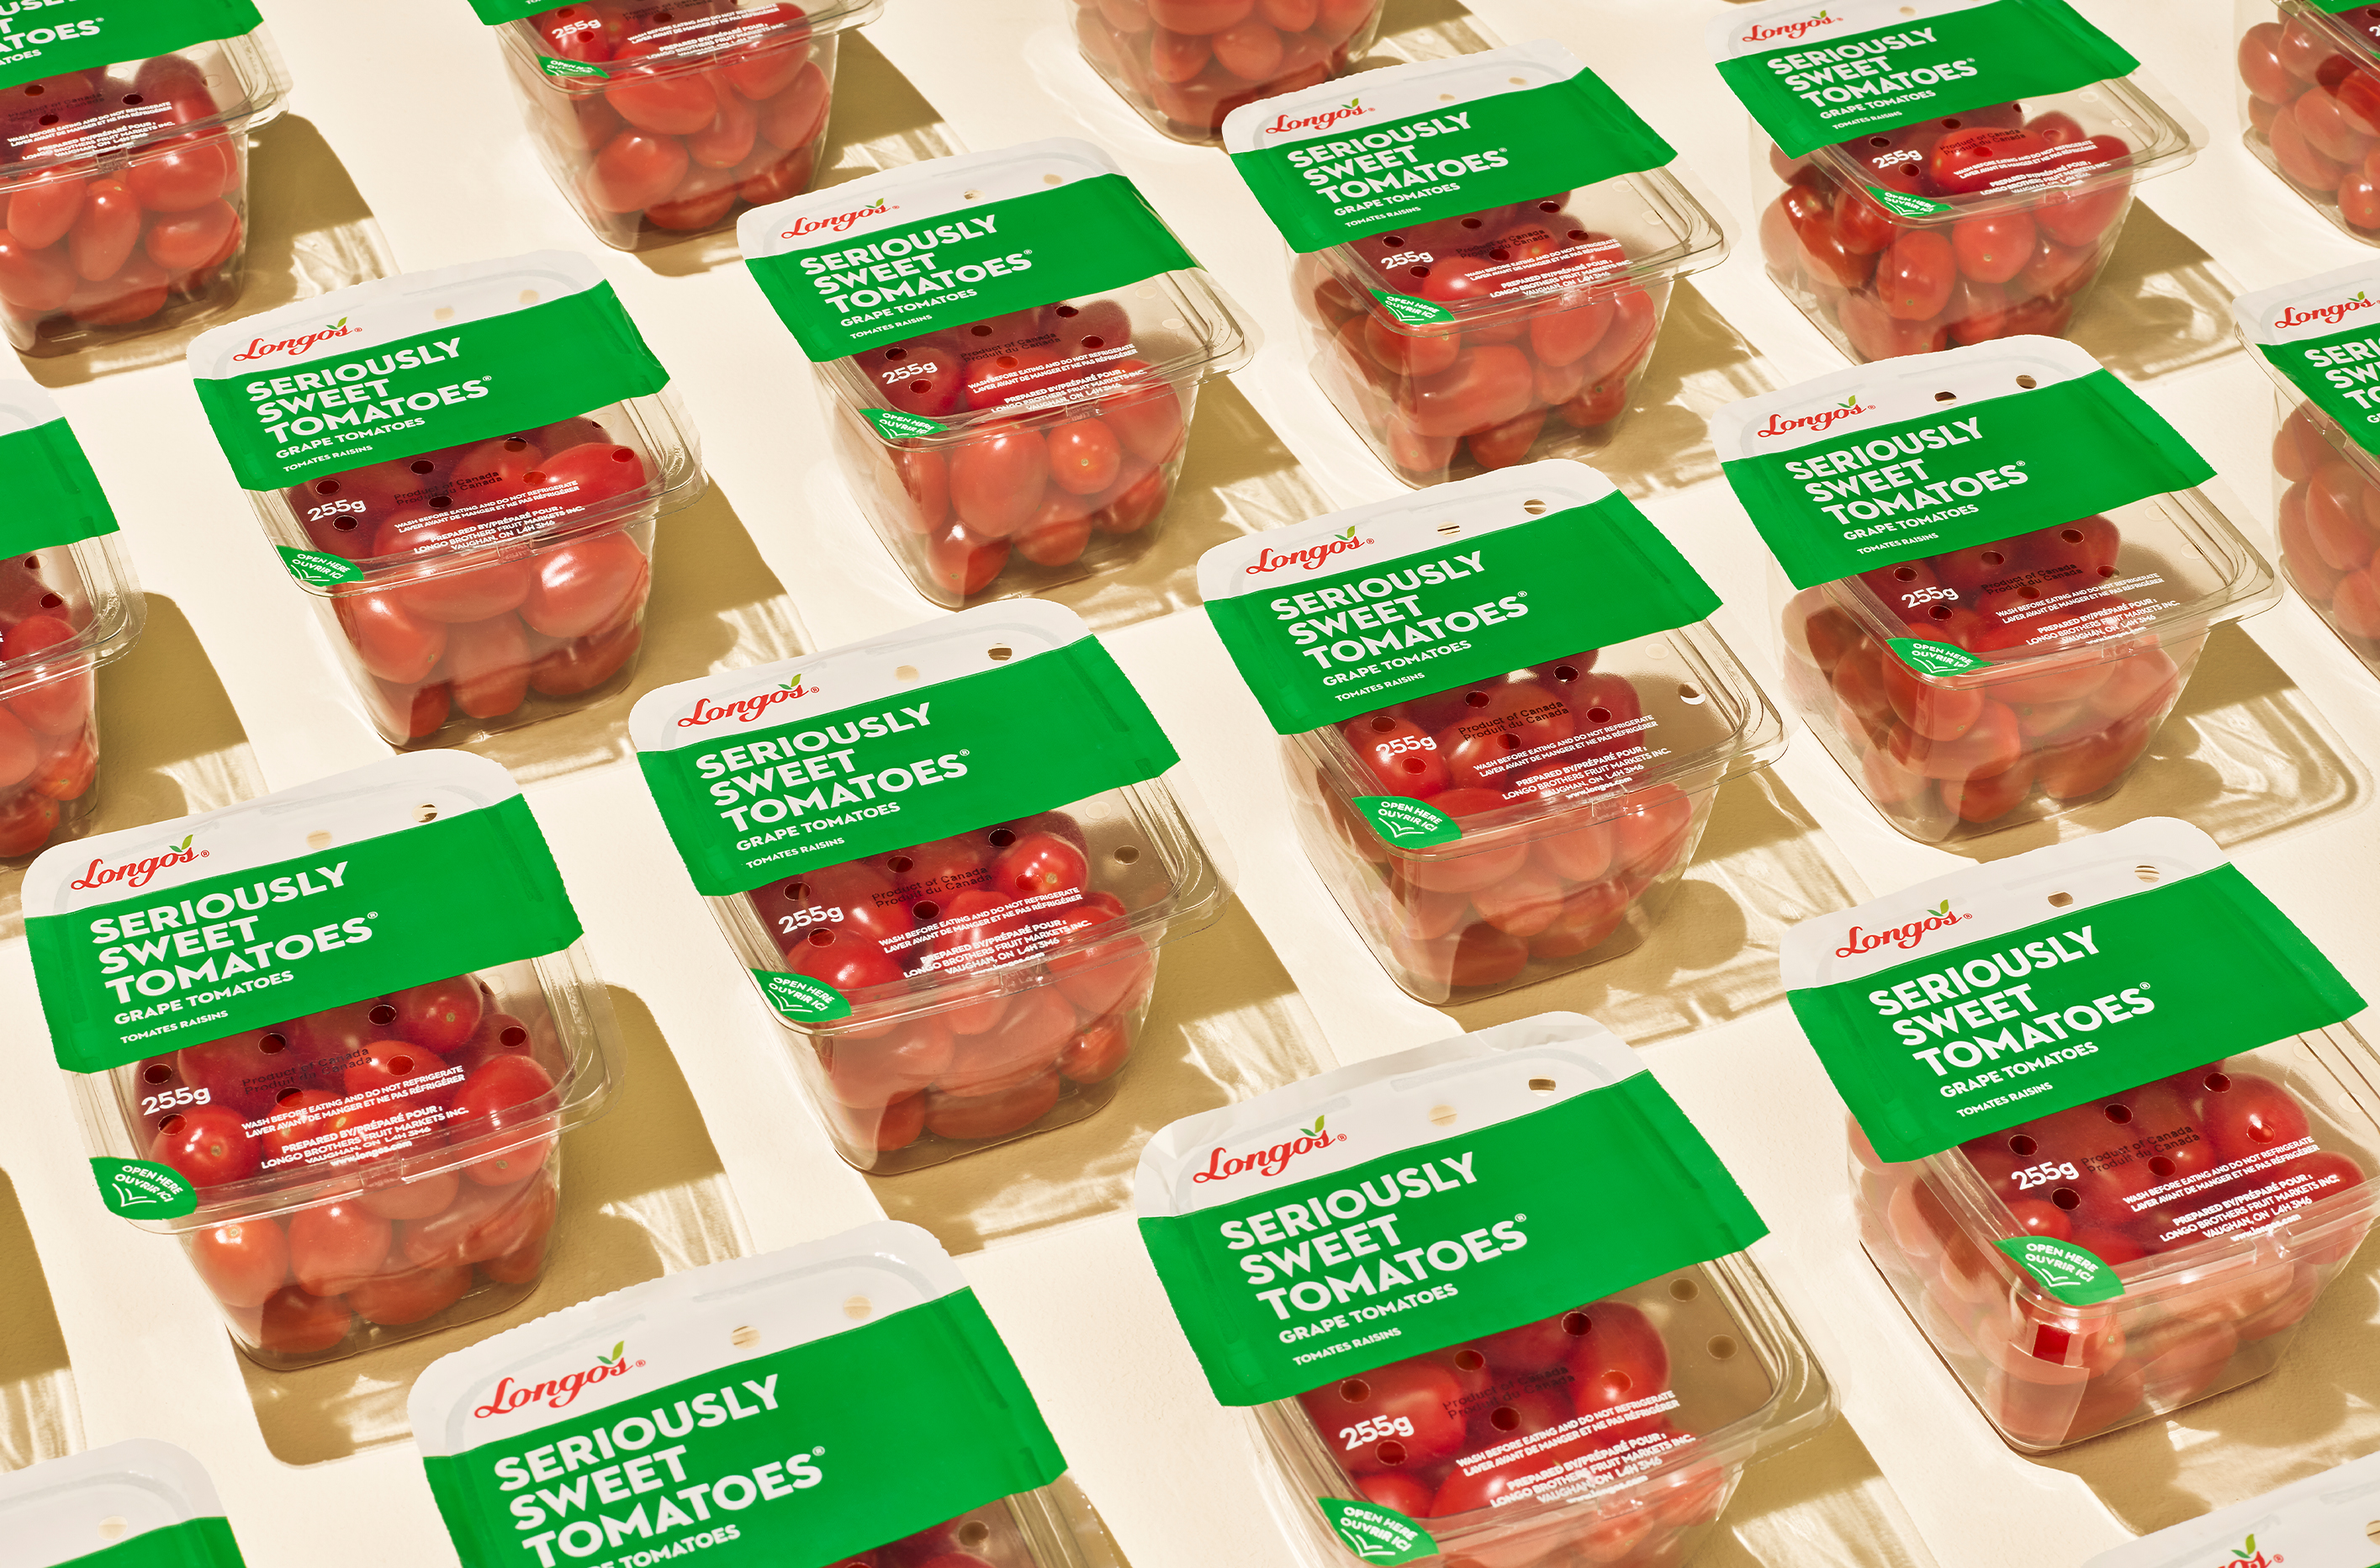 Longos-Private Label Tomatoes